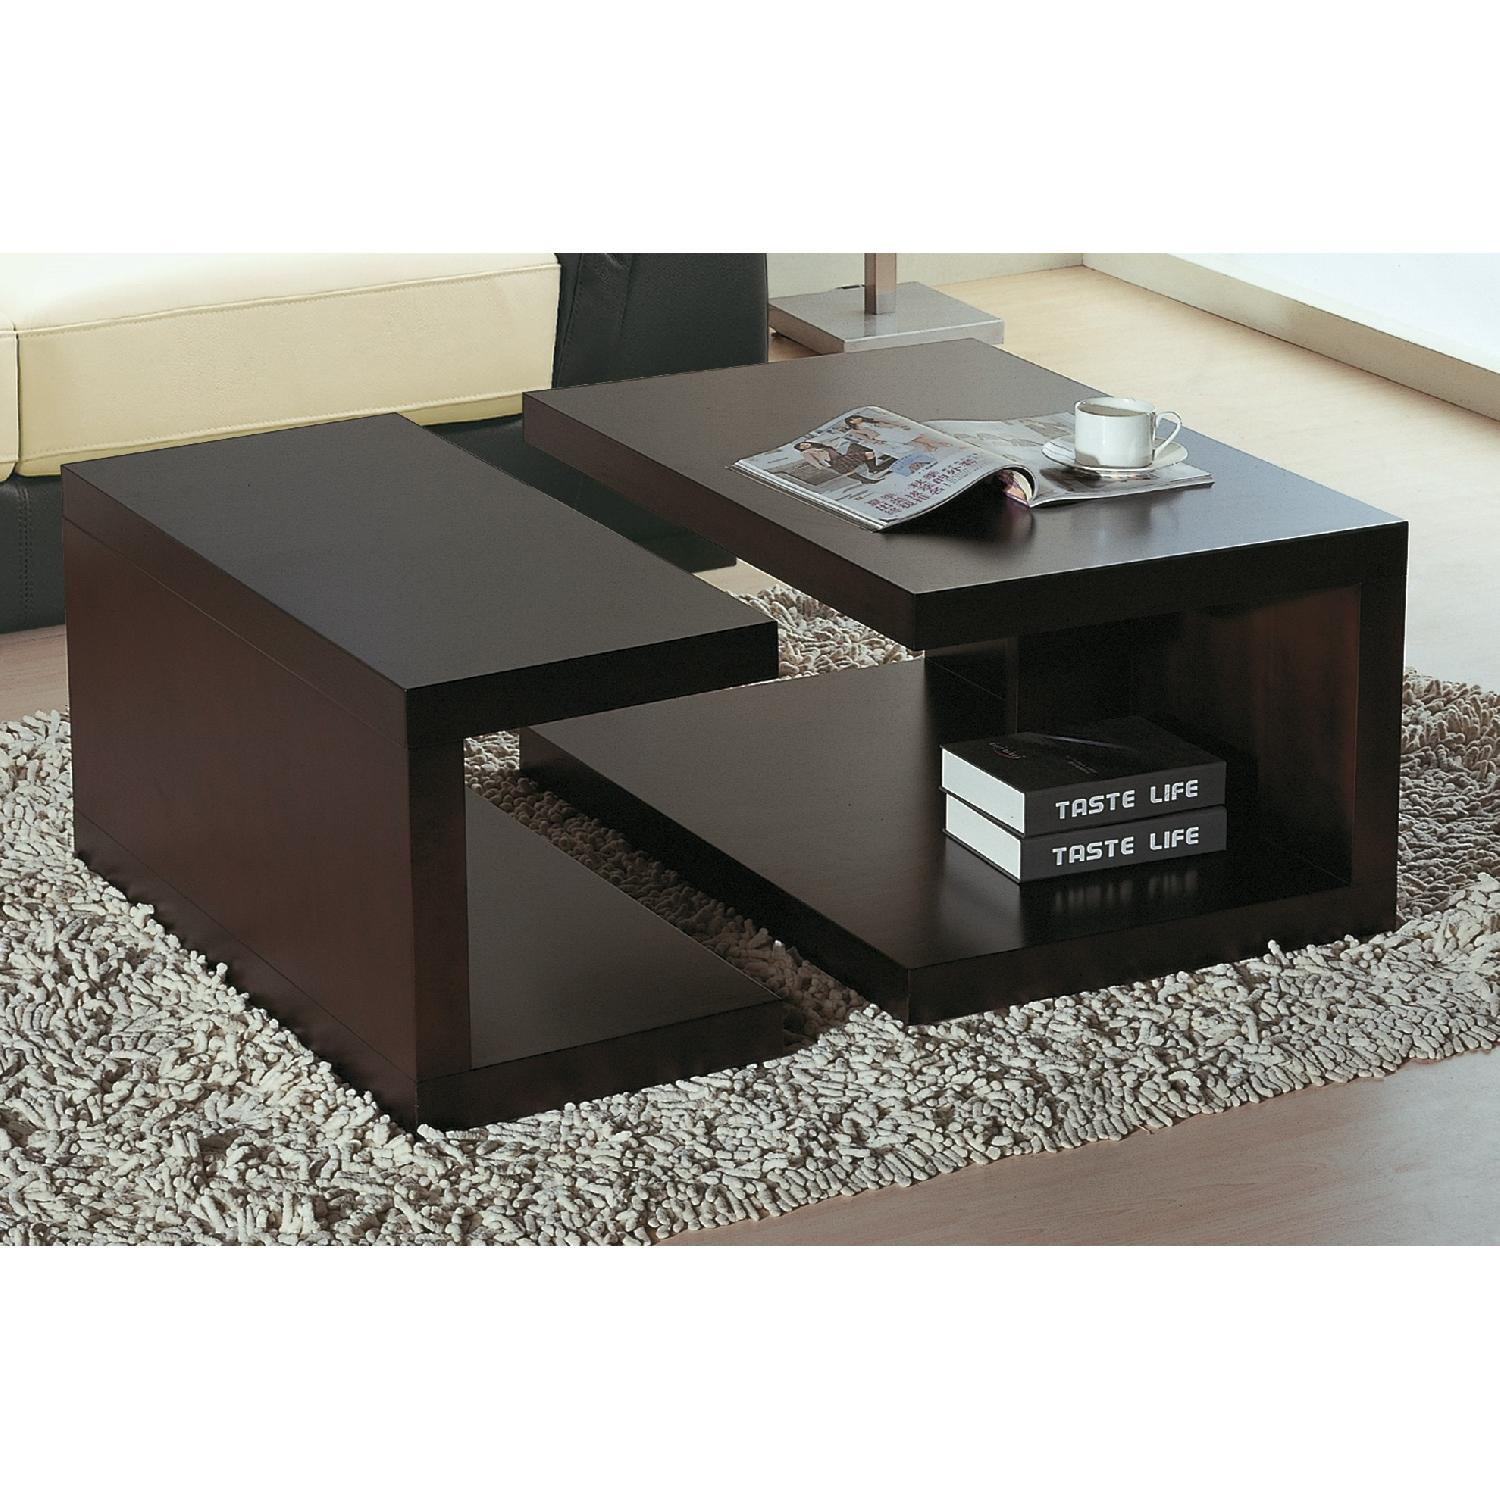 Contemporary 2-Part Coffee Table Set in Wenge Finish-1